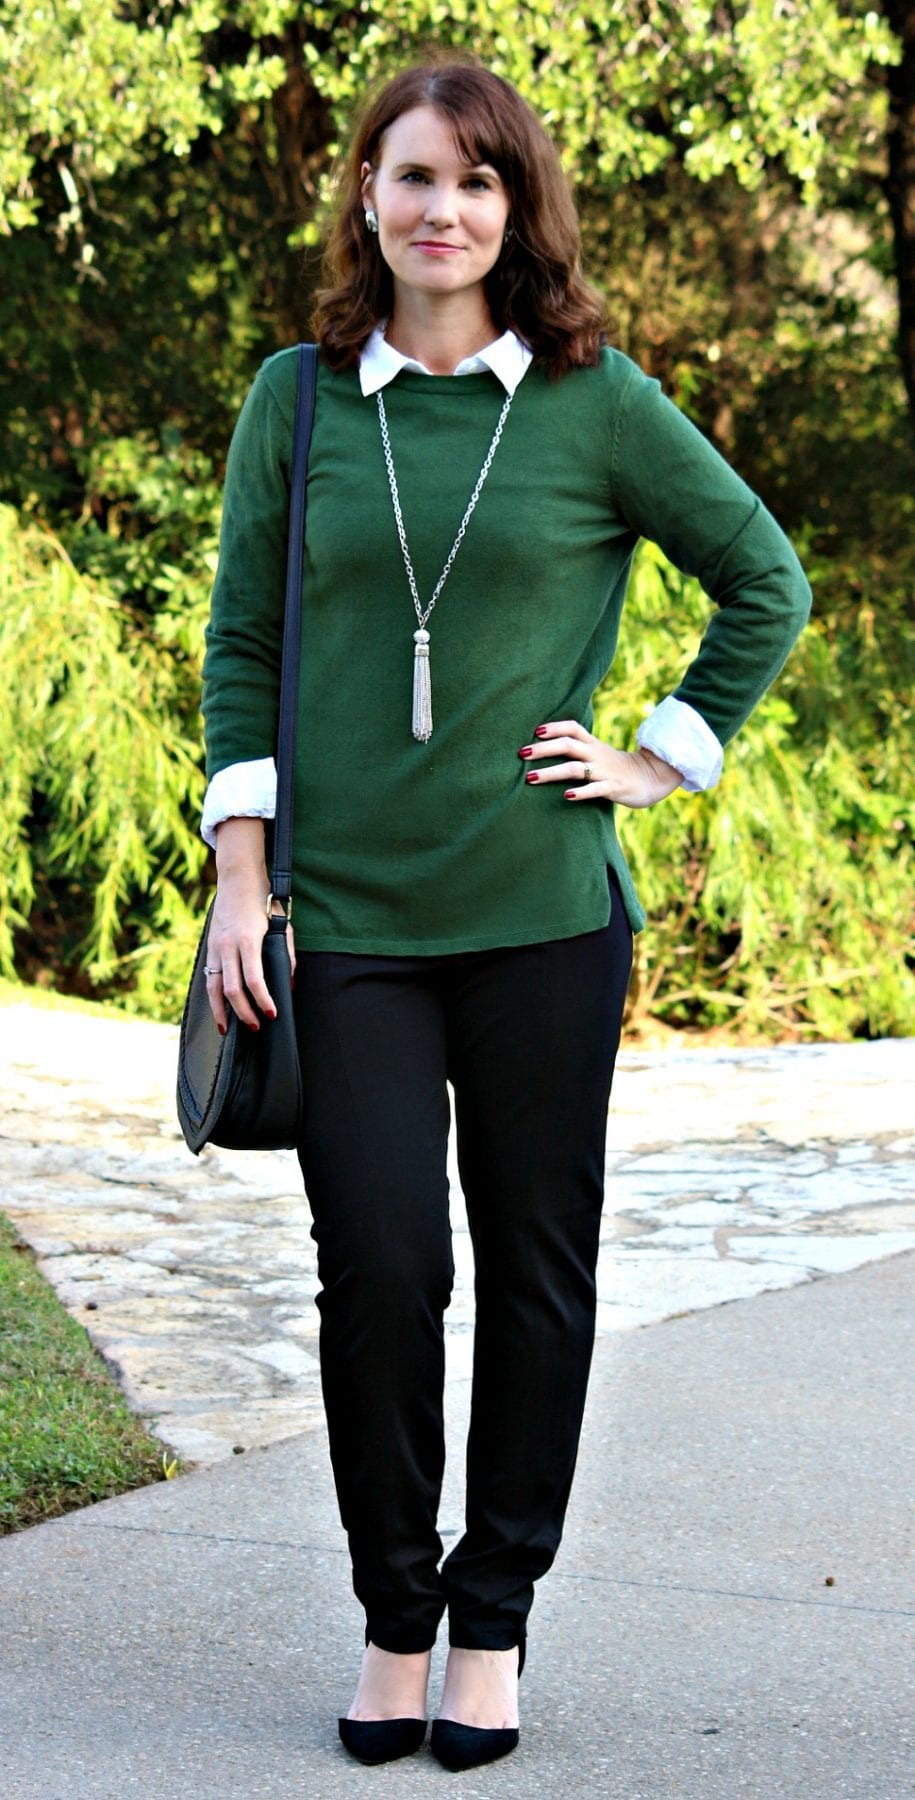 One Pair of Black Pants + 3 Outfit Ideas for Work | Mom Fabulous